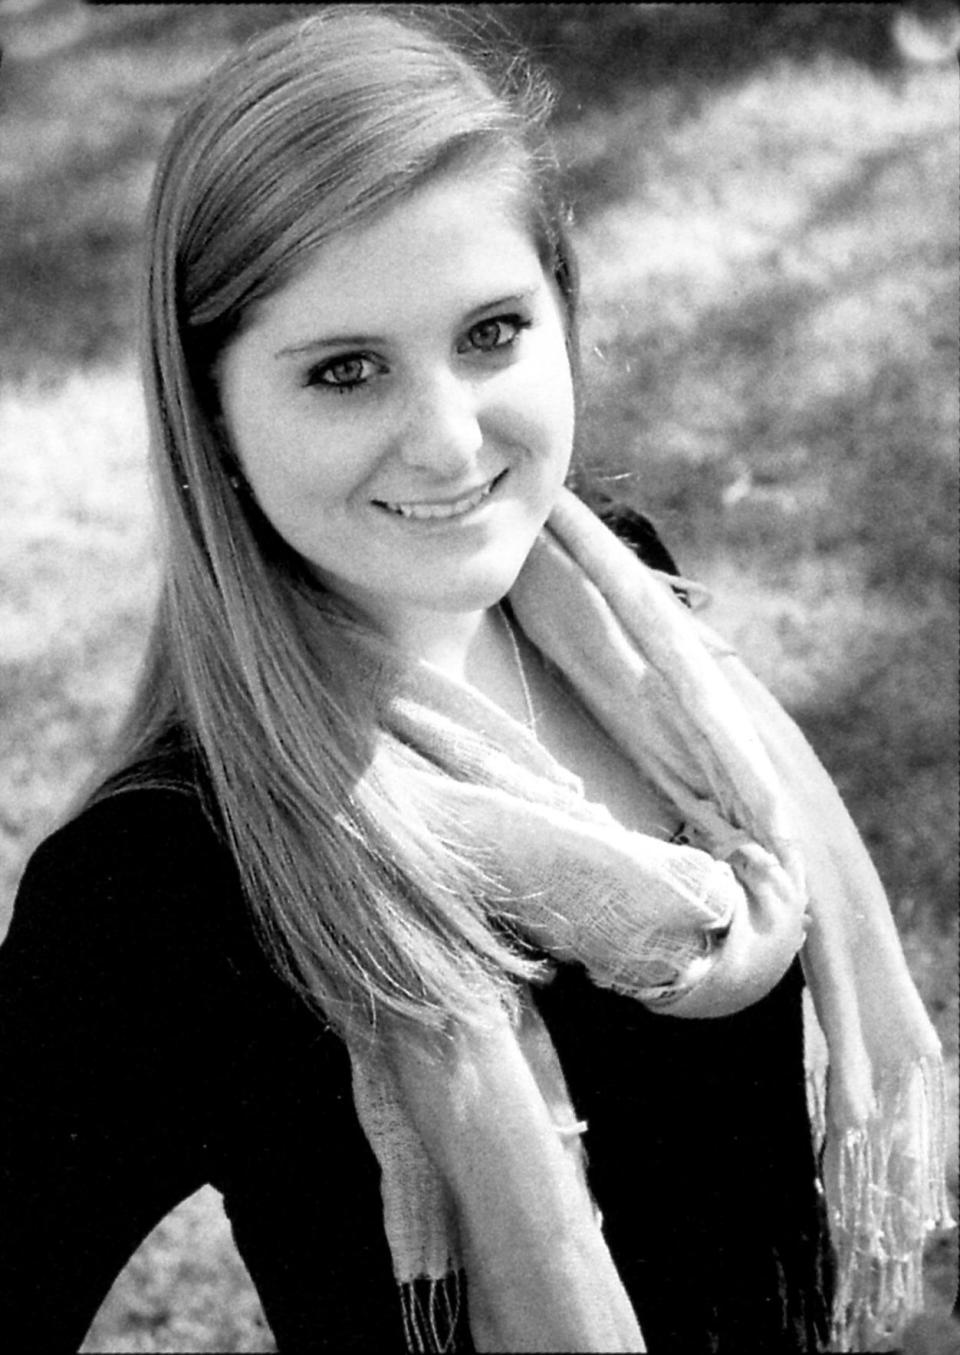 <p>Pop musician Meghan Trainor always had long blonde hair, even in high school.<i> (Photo: Seth Poppel/Yearbook Library)</i></p>